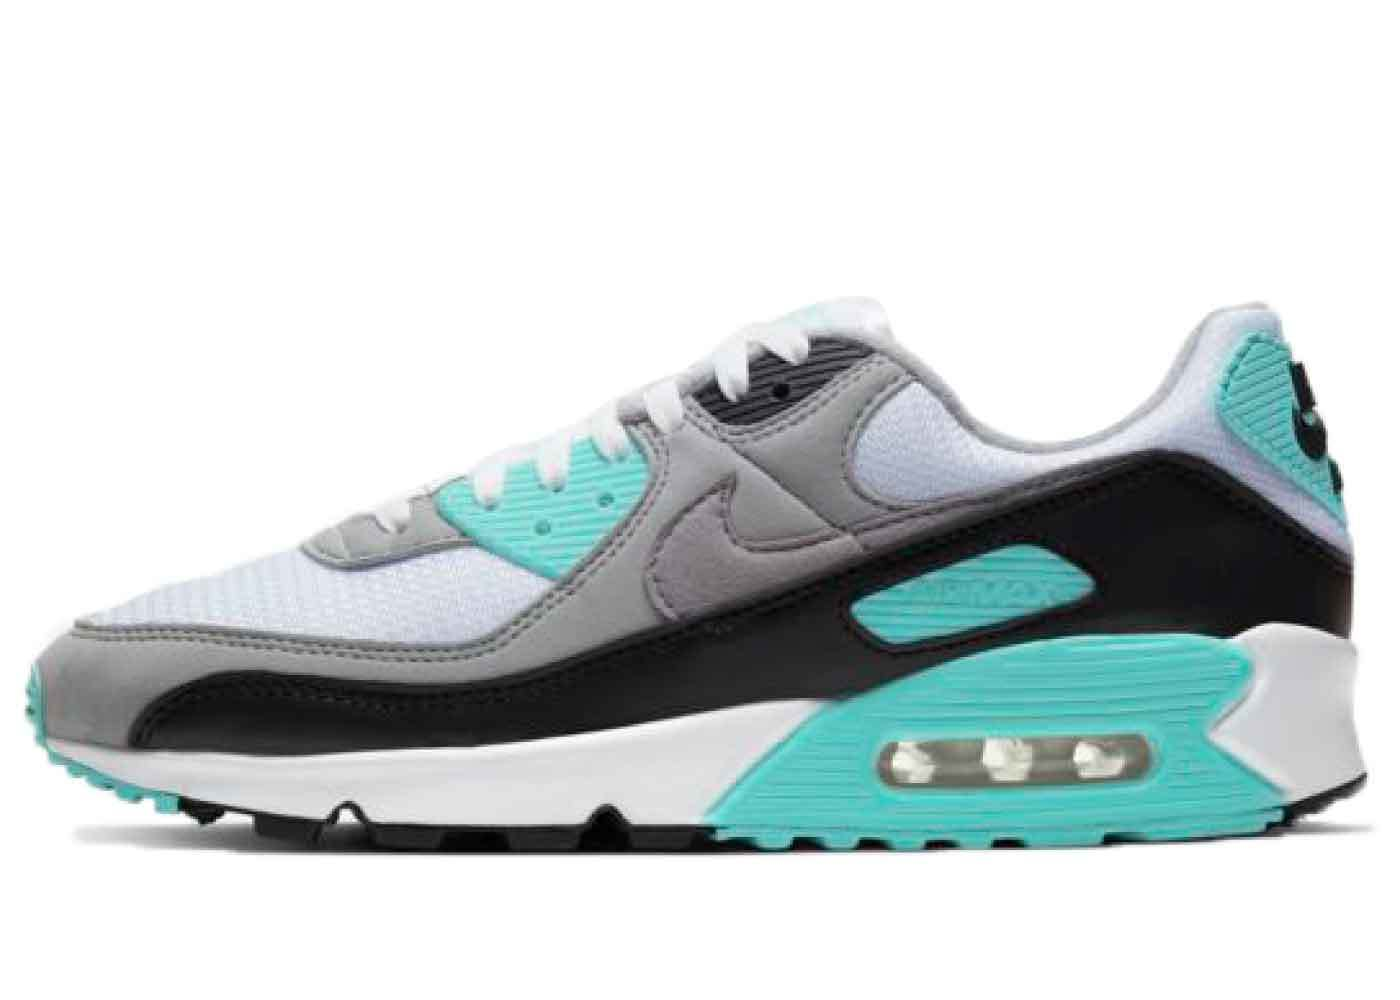 Nike Air Max 90 Turquoise/ Particle Greyの写真